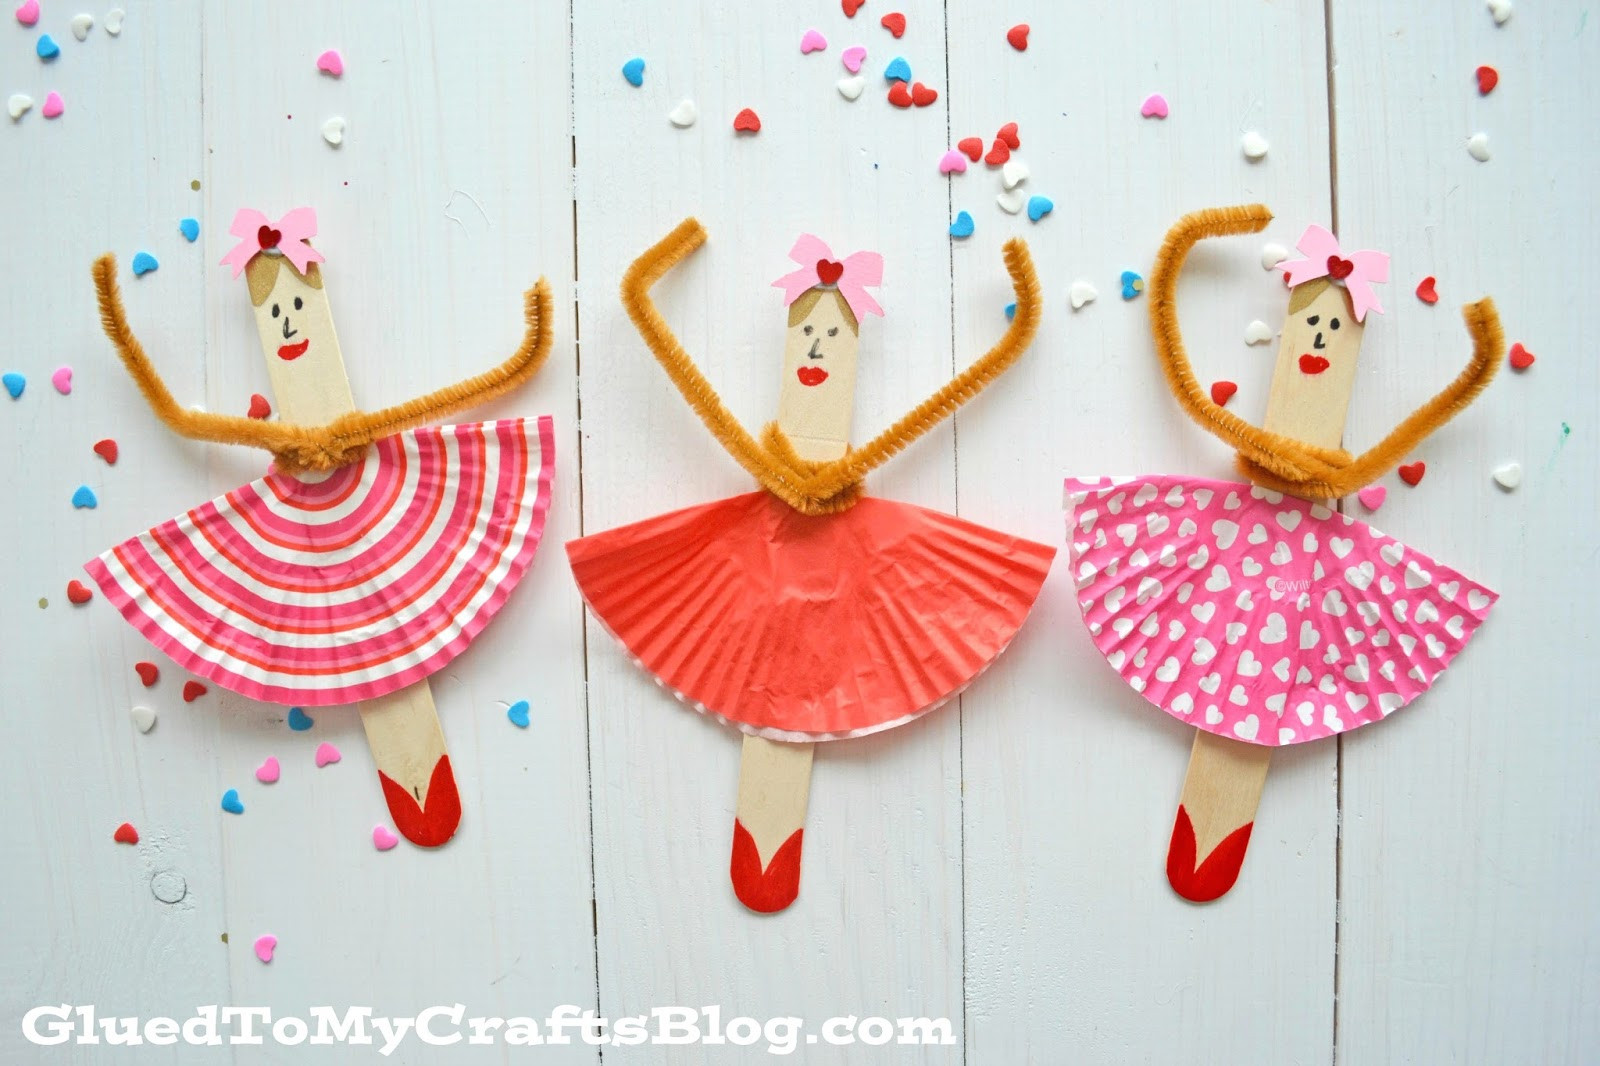 Best ideas about Kids Crafts For Girls . Save or Pin 20 Cutest and Super Fun Popsicle Stick Crafts Now.